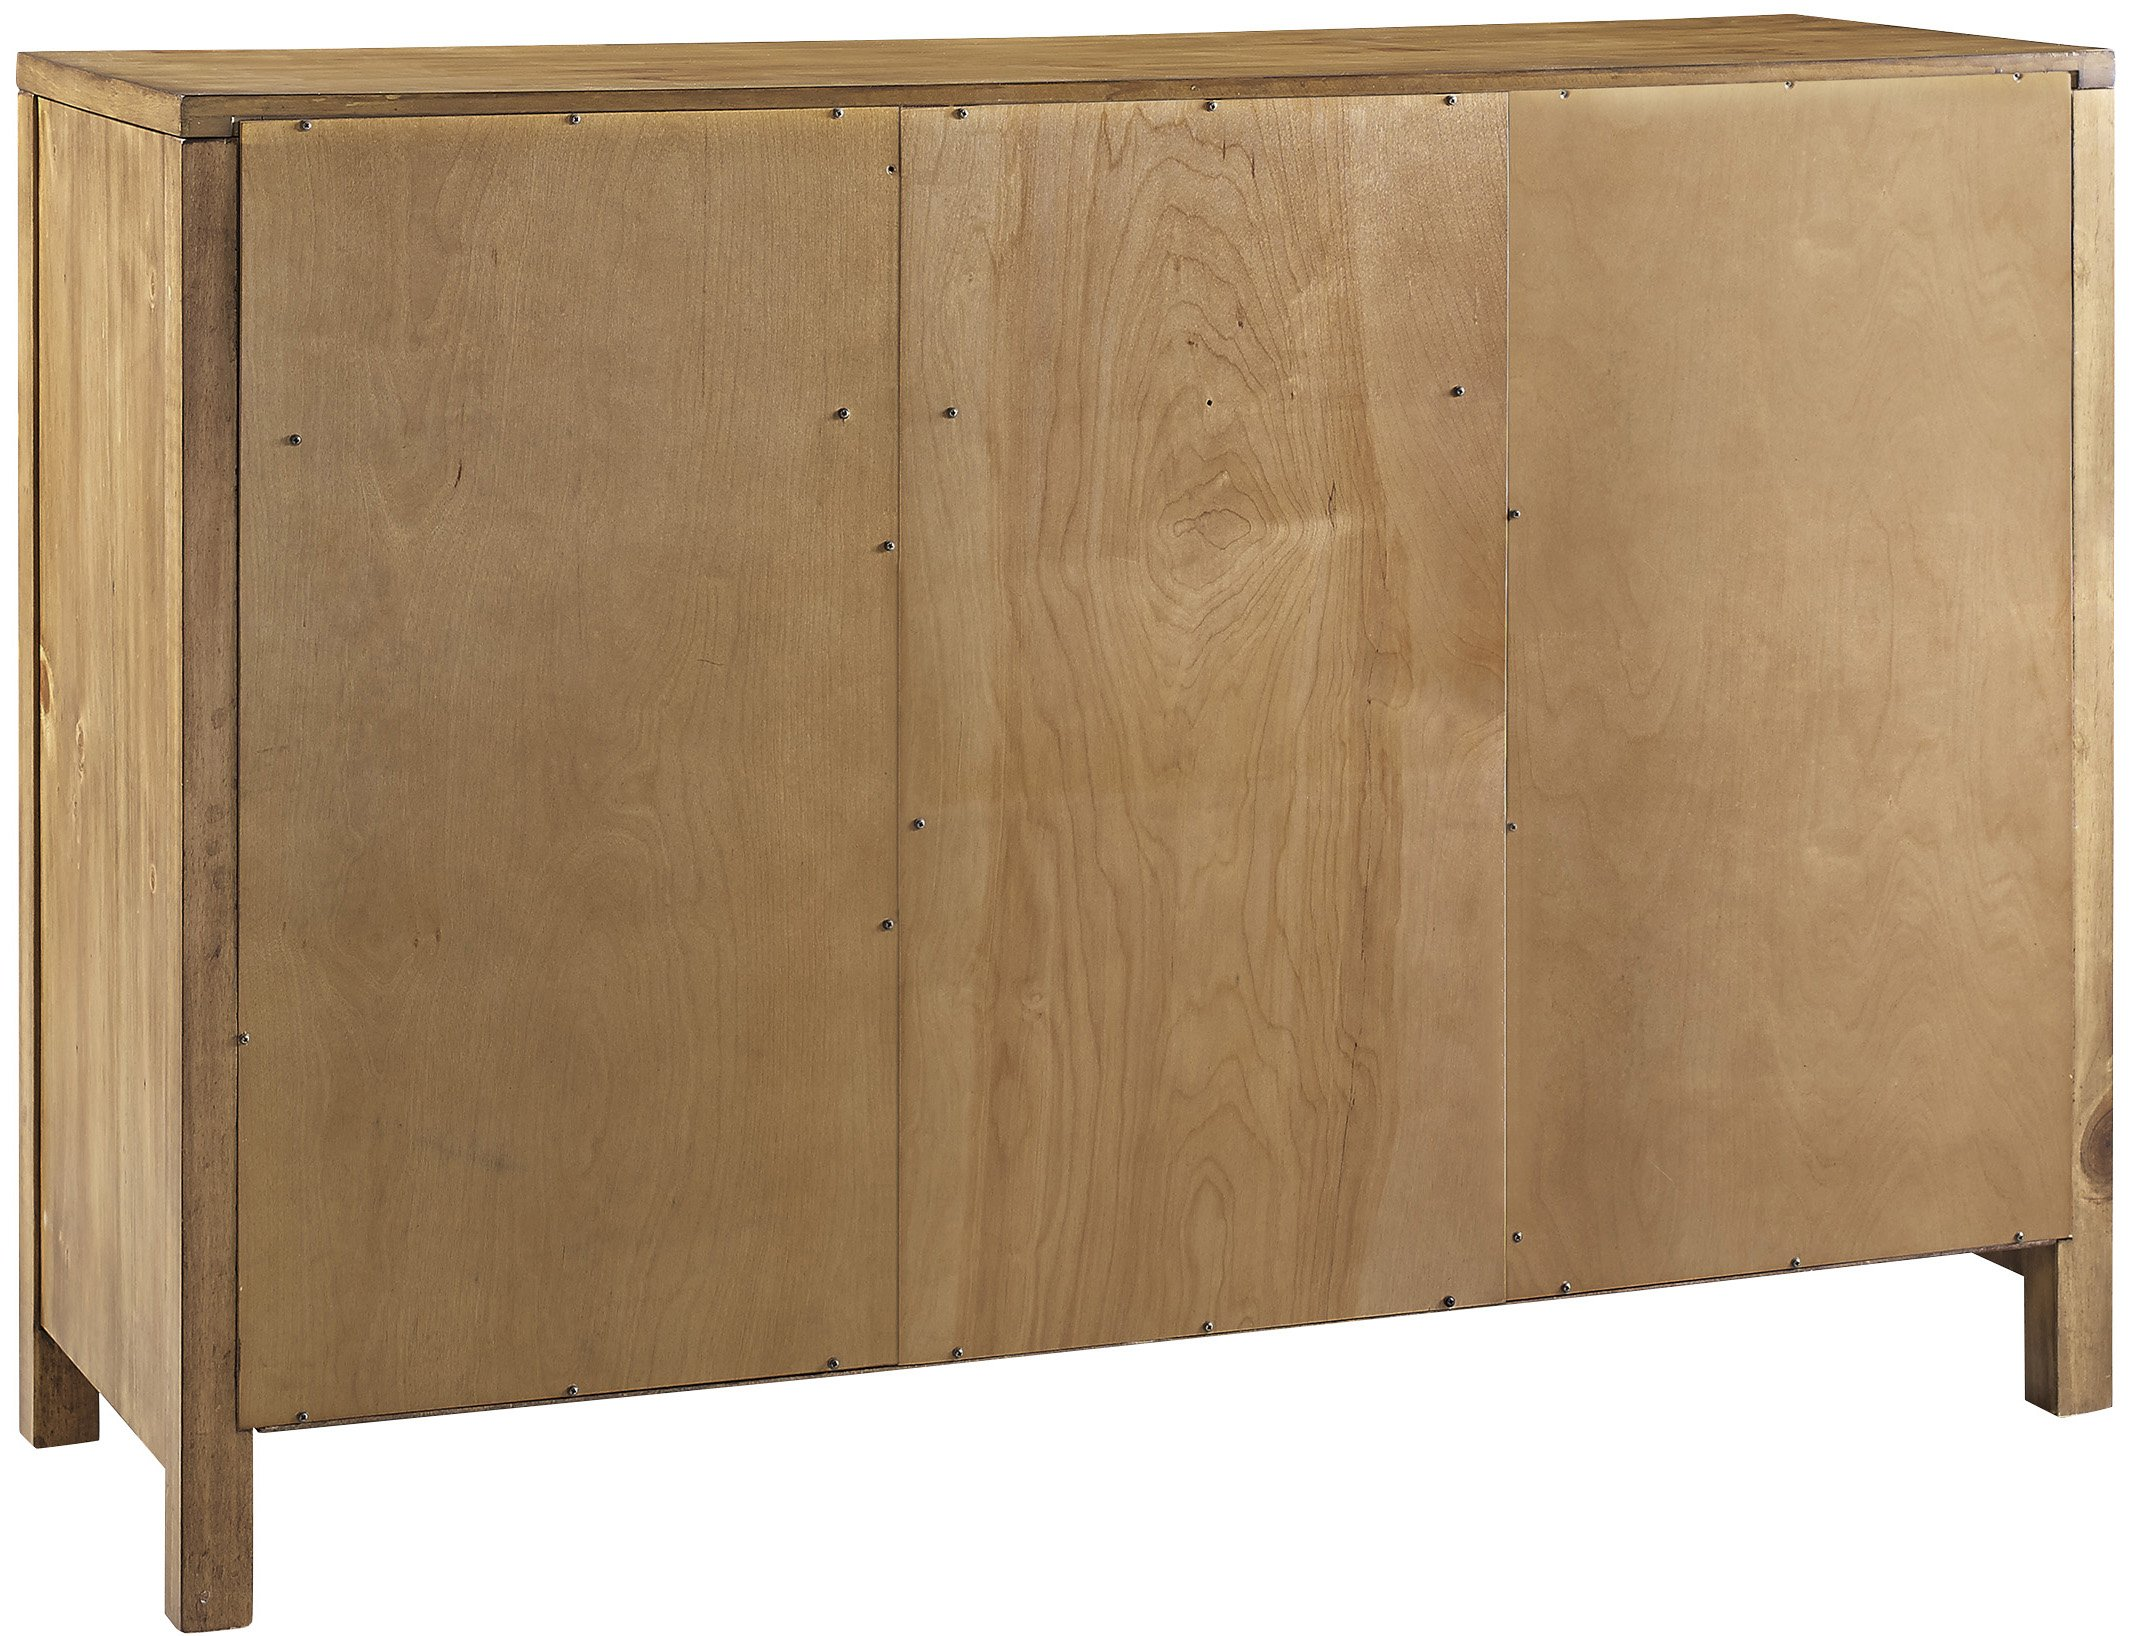 Crosley Furniture Roots Buffet Dining Room Storage - Natural by Crosley Furniture (Image #12)